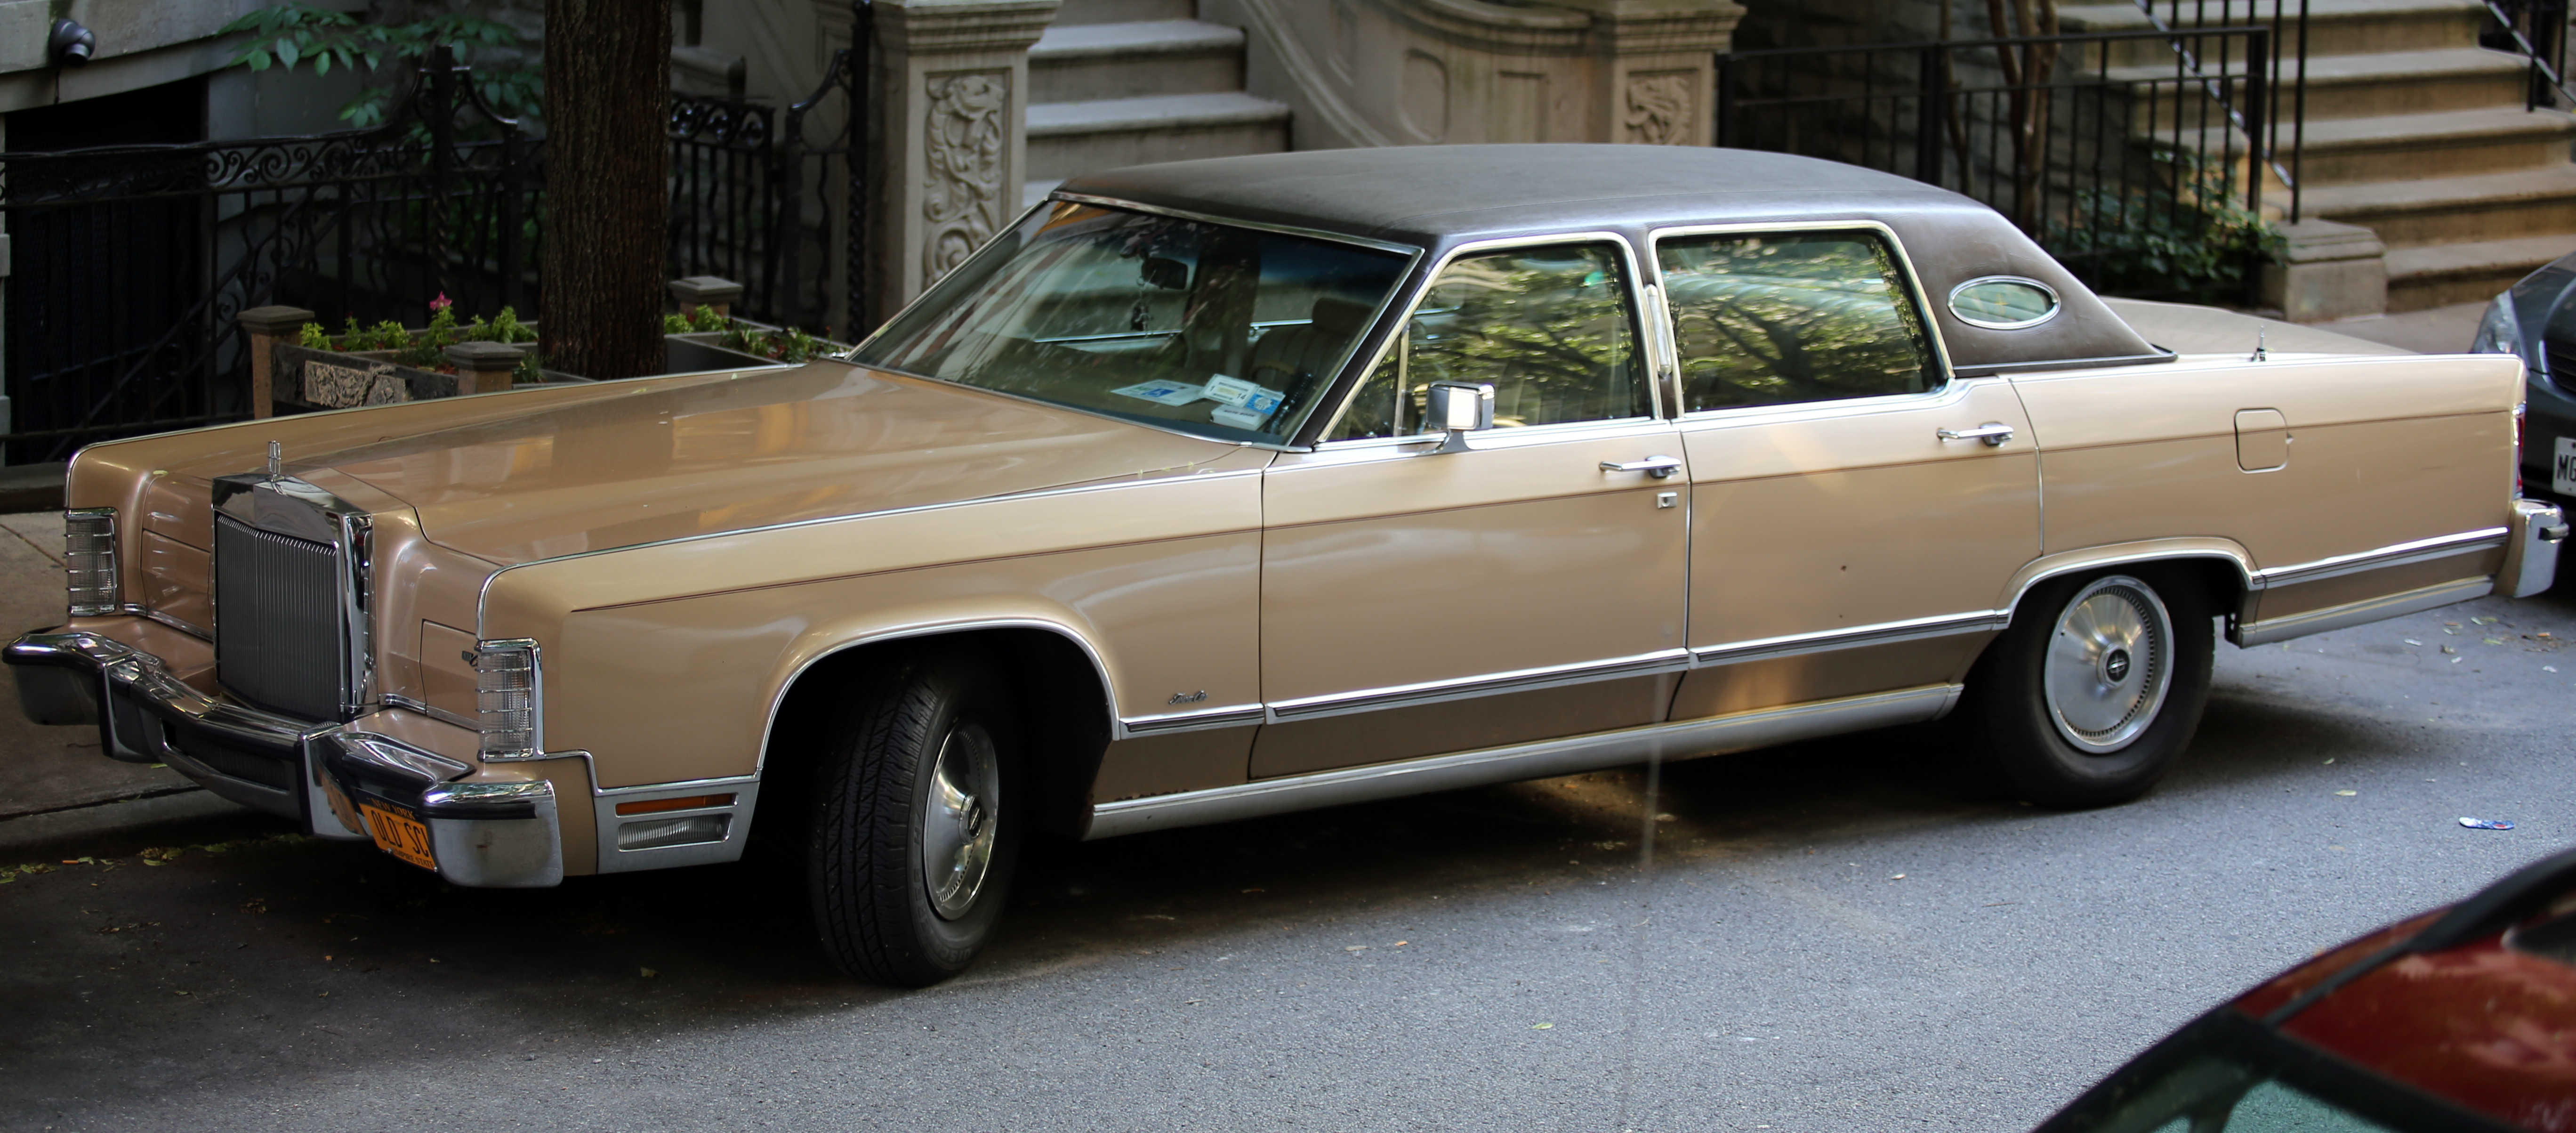 file 1978 lincoln continental town car from up. Black Bedroom Furniture Sets. Home Design Ideas